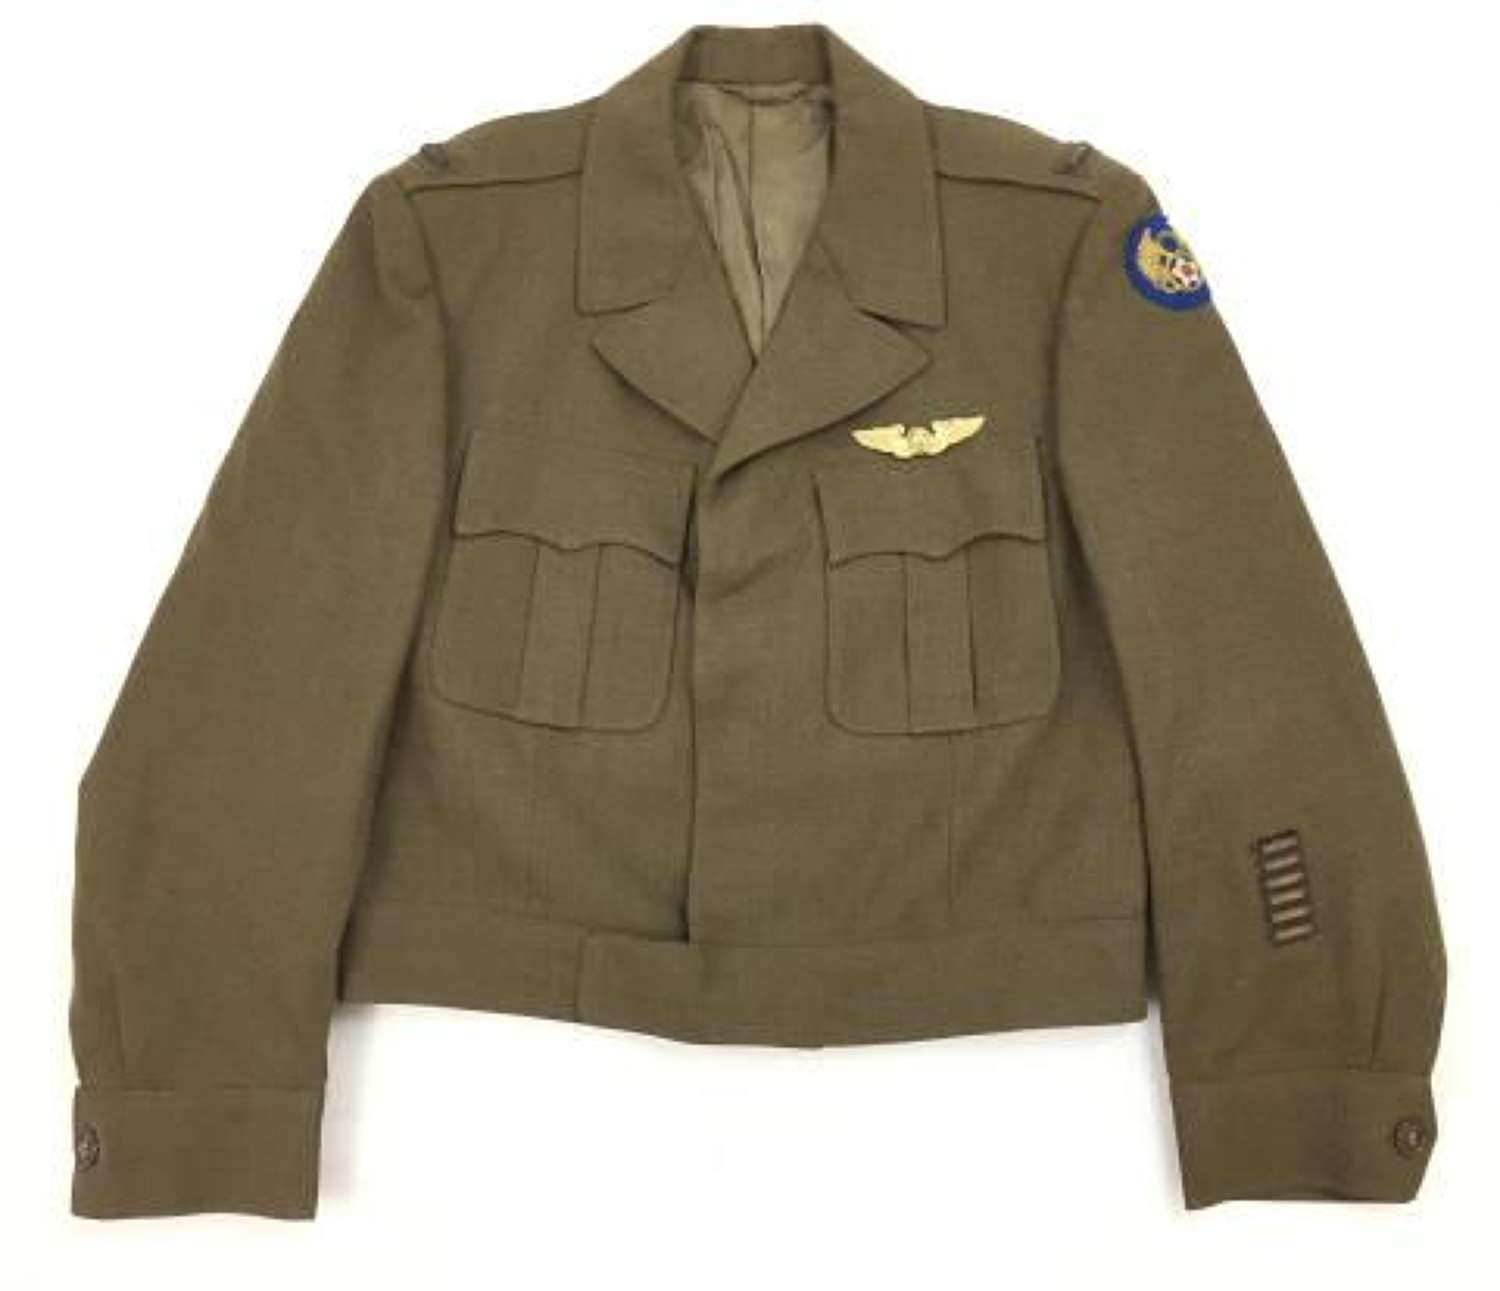 Original US 8th Army Air Force Officers Ike Jacket with Bullion Insignia